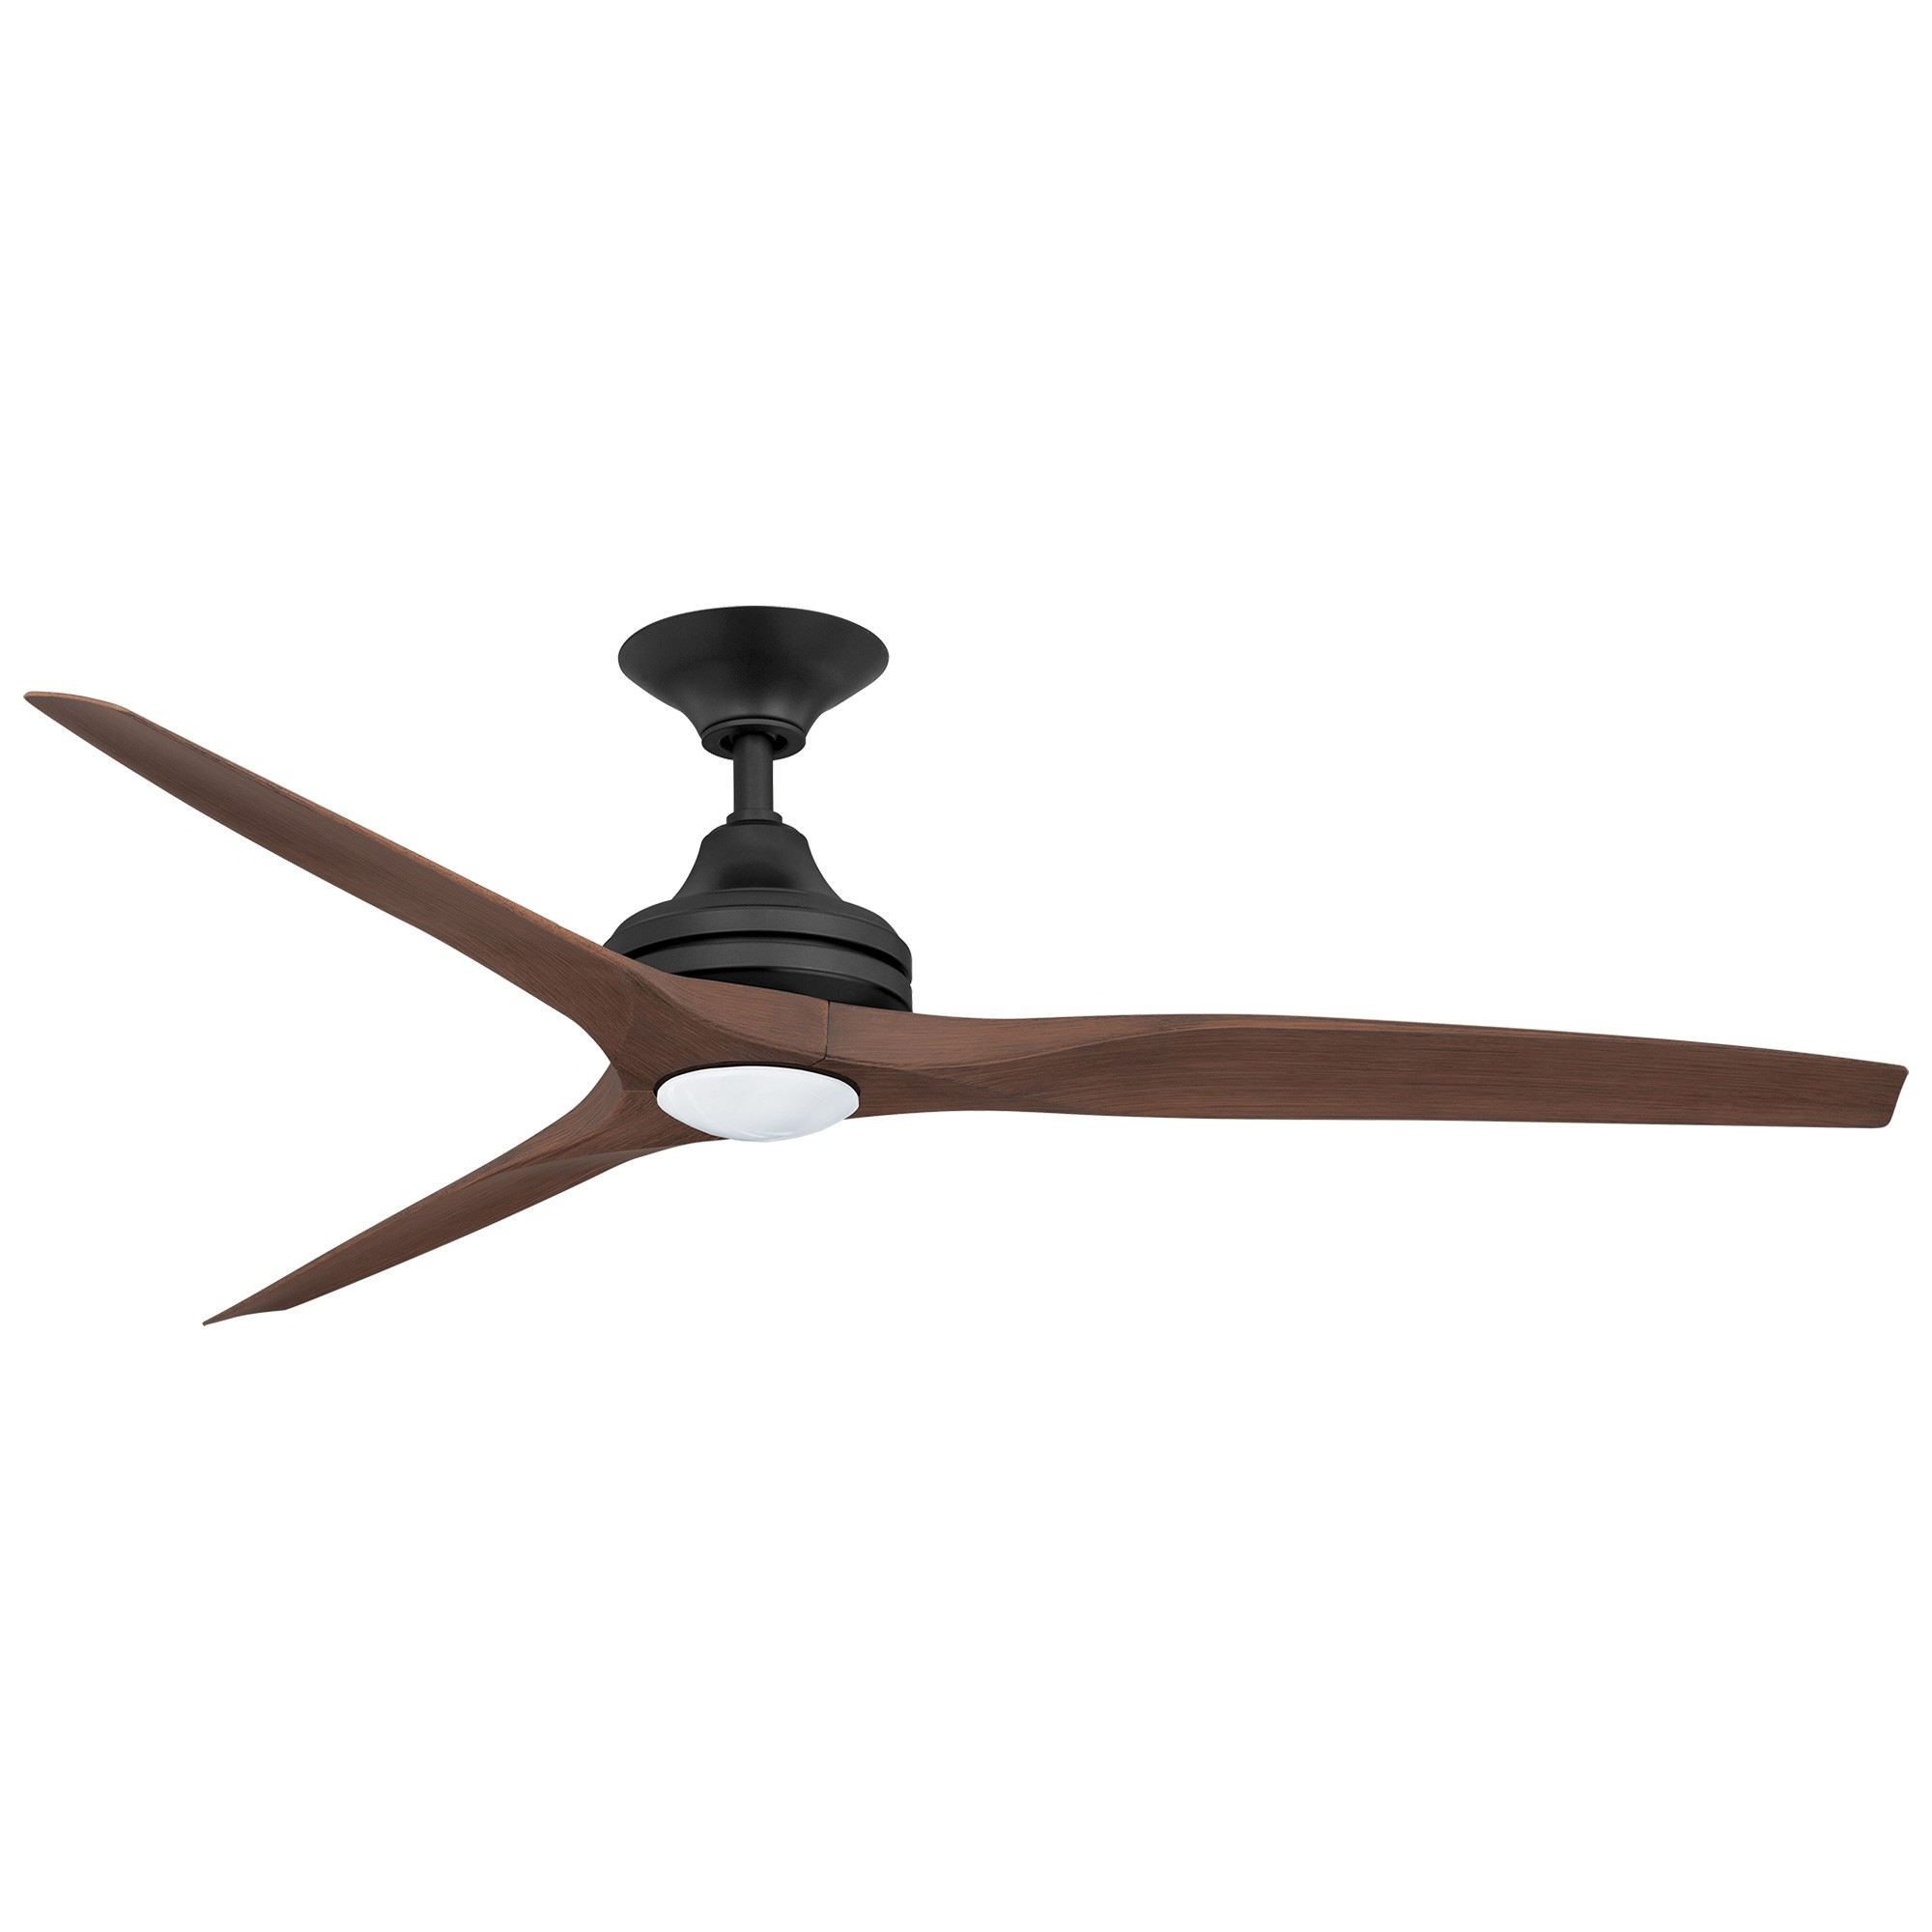 Threesixty Spitfire Ceiling Fan with LED Light, Polymer Blades, 152cm/60